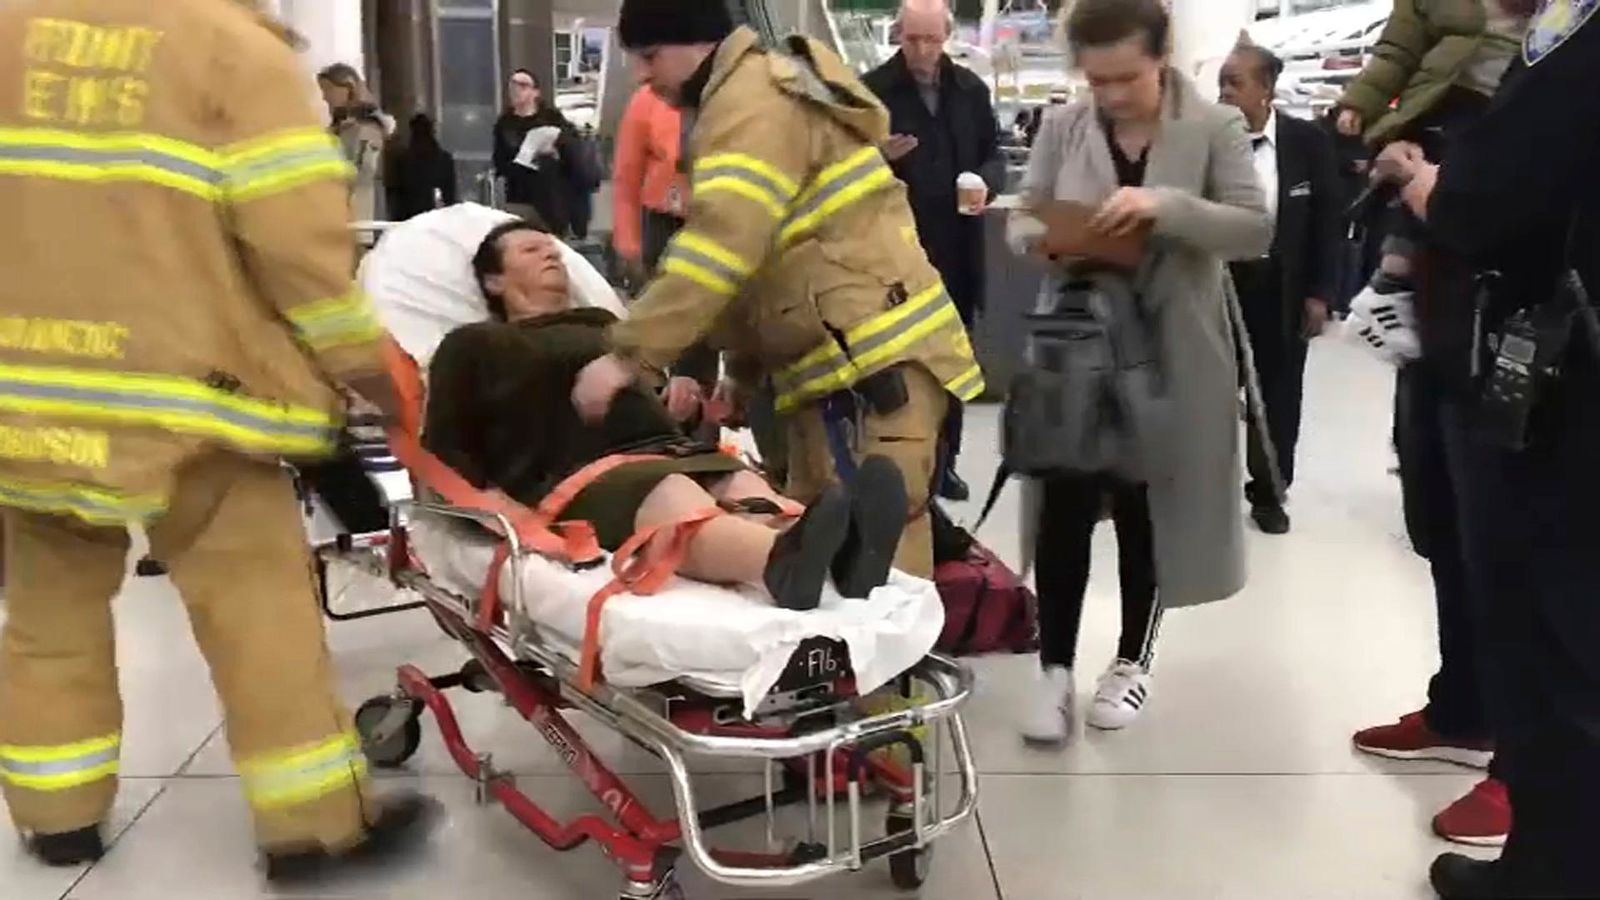 In this still image taken from video provided by WNBC-TV News 4 New York, emergency medical personnel tend to an injured passenger from a Turkish Airlines flight at New York's John F. Kennedy International Airport, Saturday, March 9, 2019. Officials say severe turbulence injured at least 30 people aboard a Turkish Airlines flight from Istanbul that landed safely at New York's Kennedy International Airport on Saturday. (WNBC-TV News 4 New York via AP)